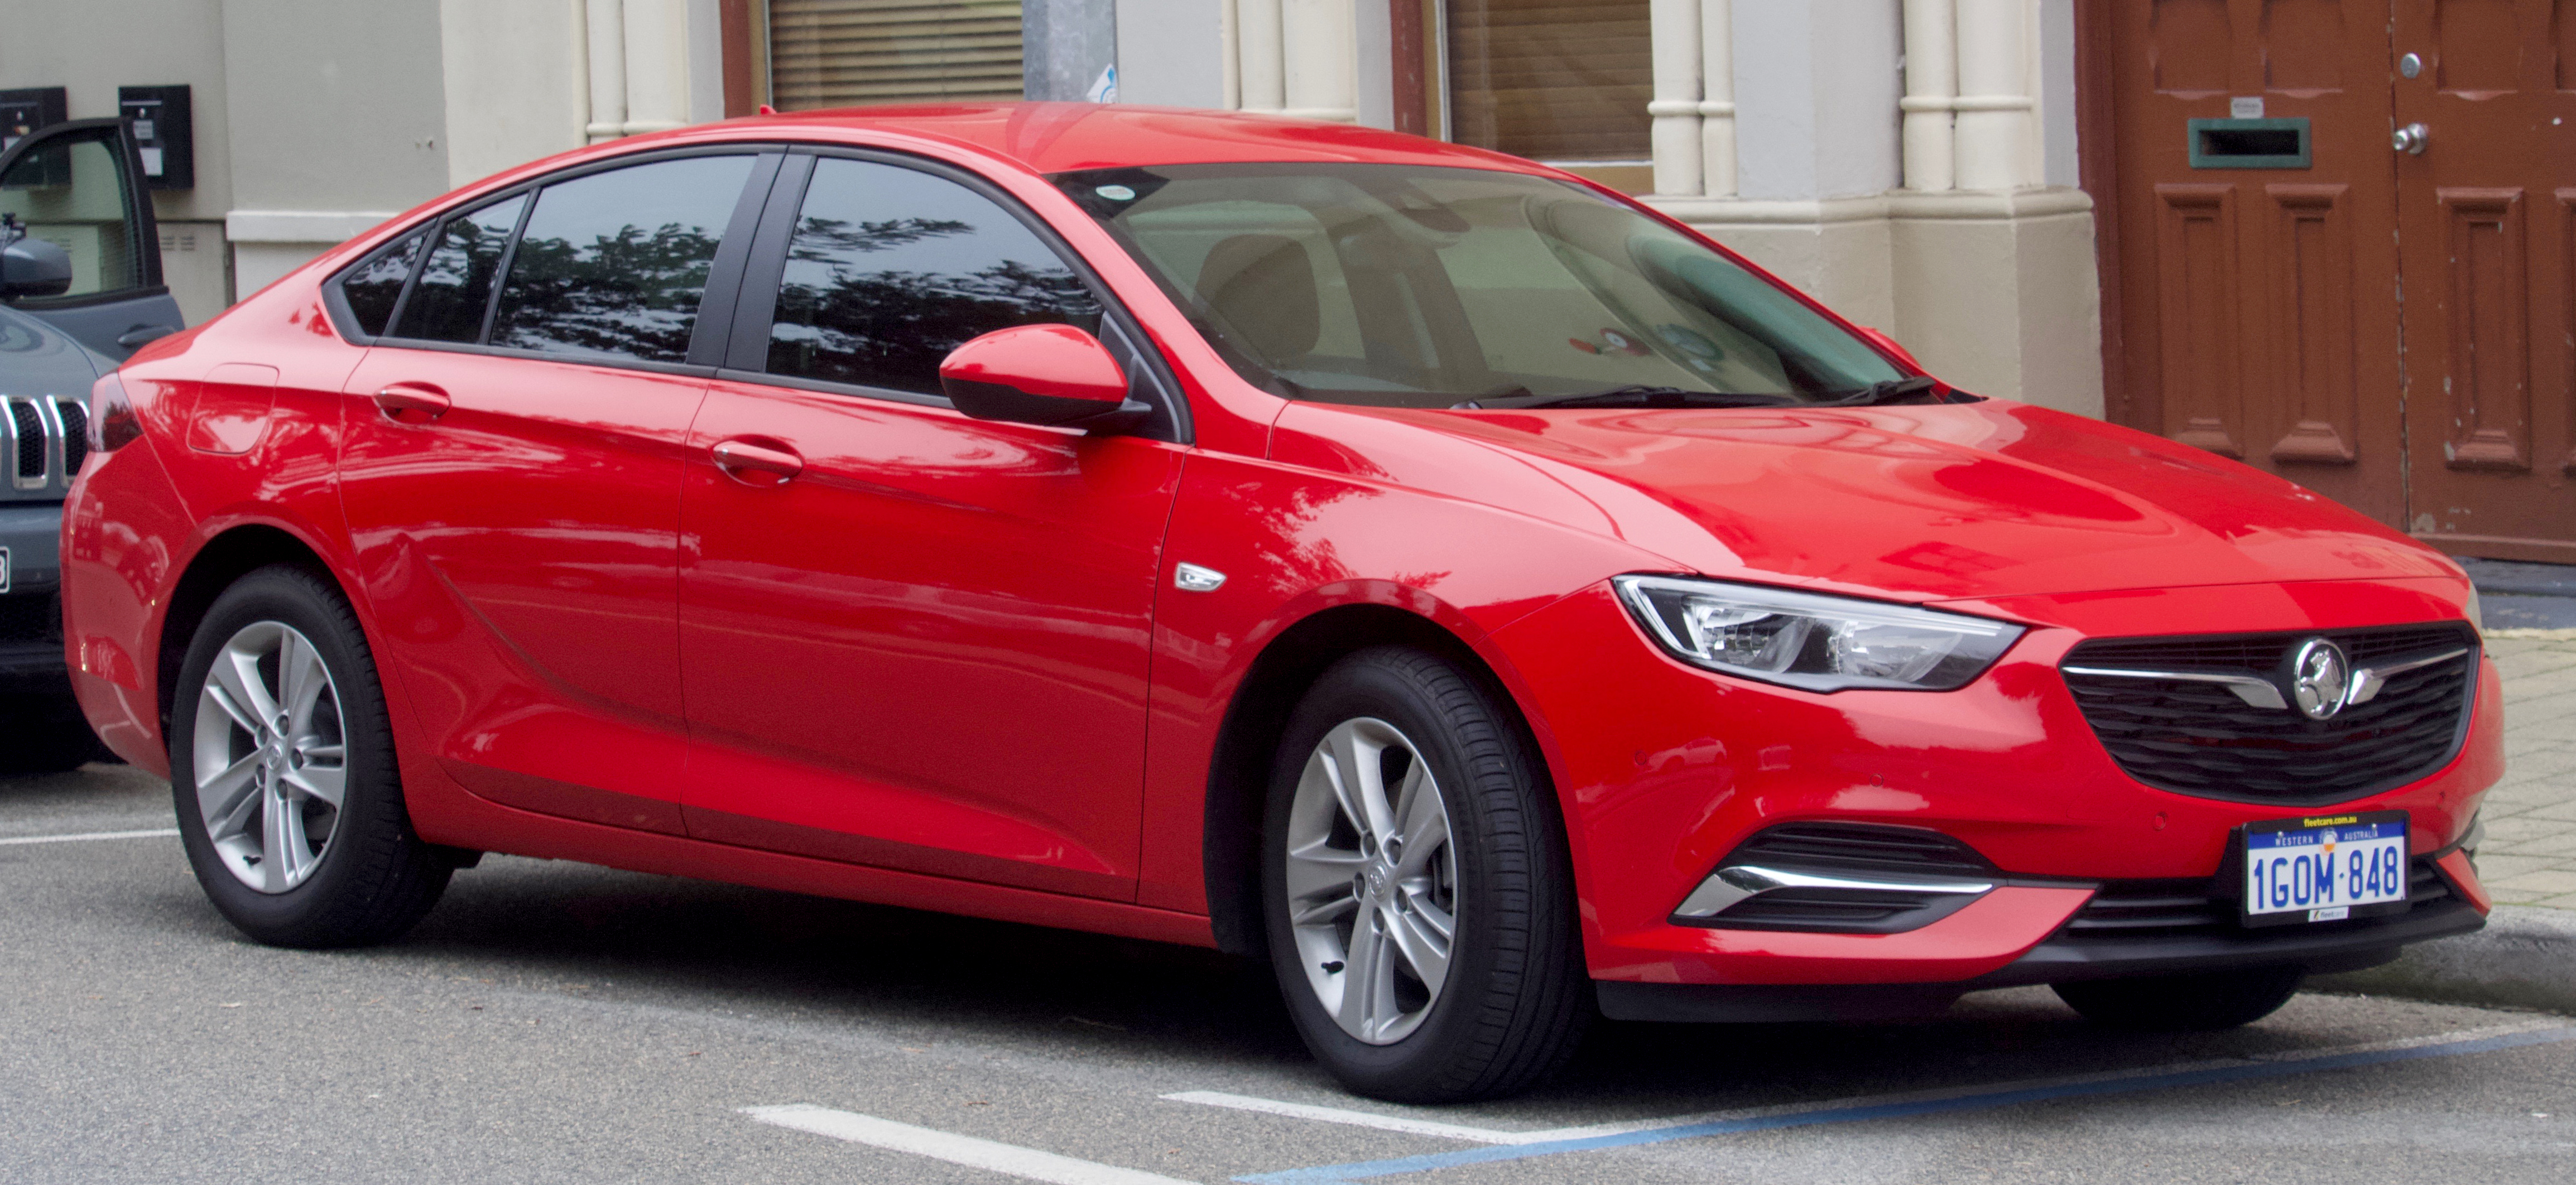 Holden Commodore - Wikiwand